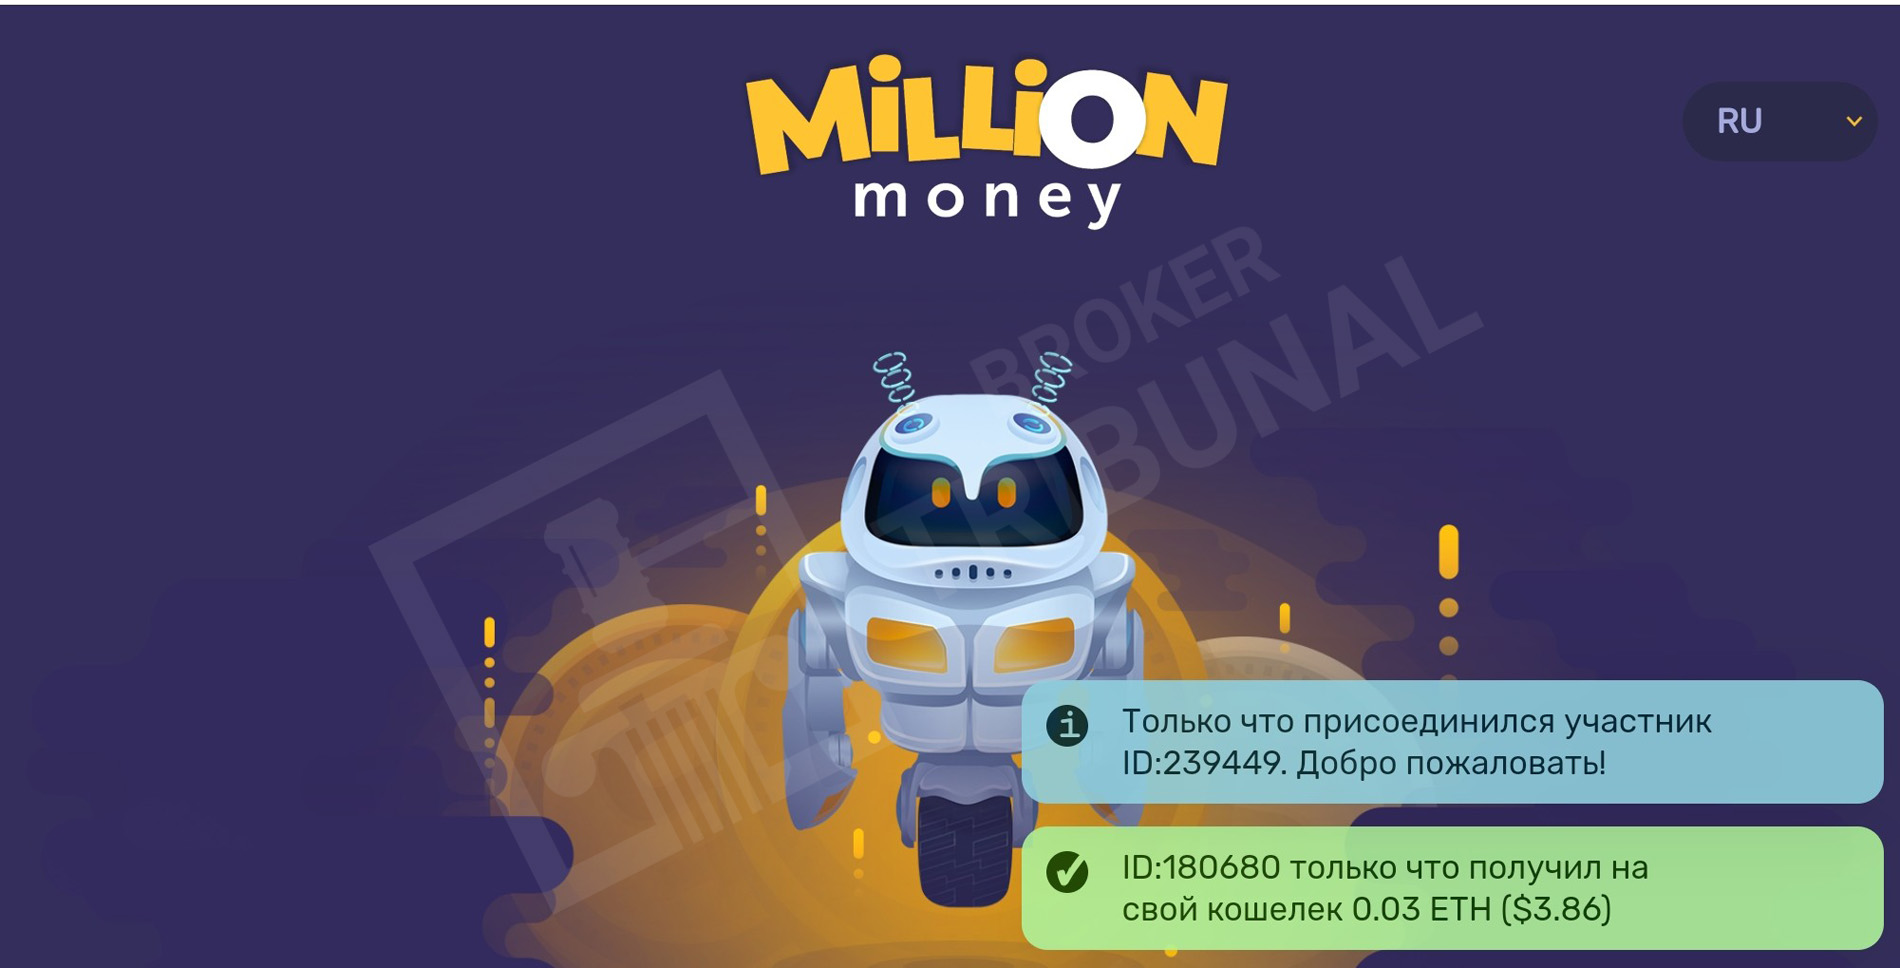 million money